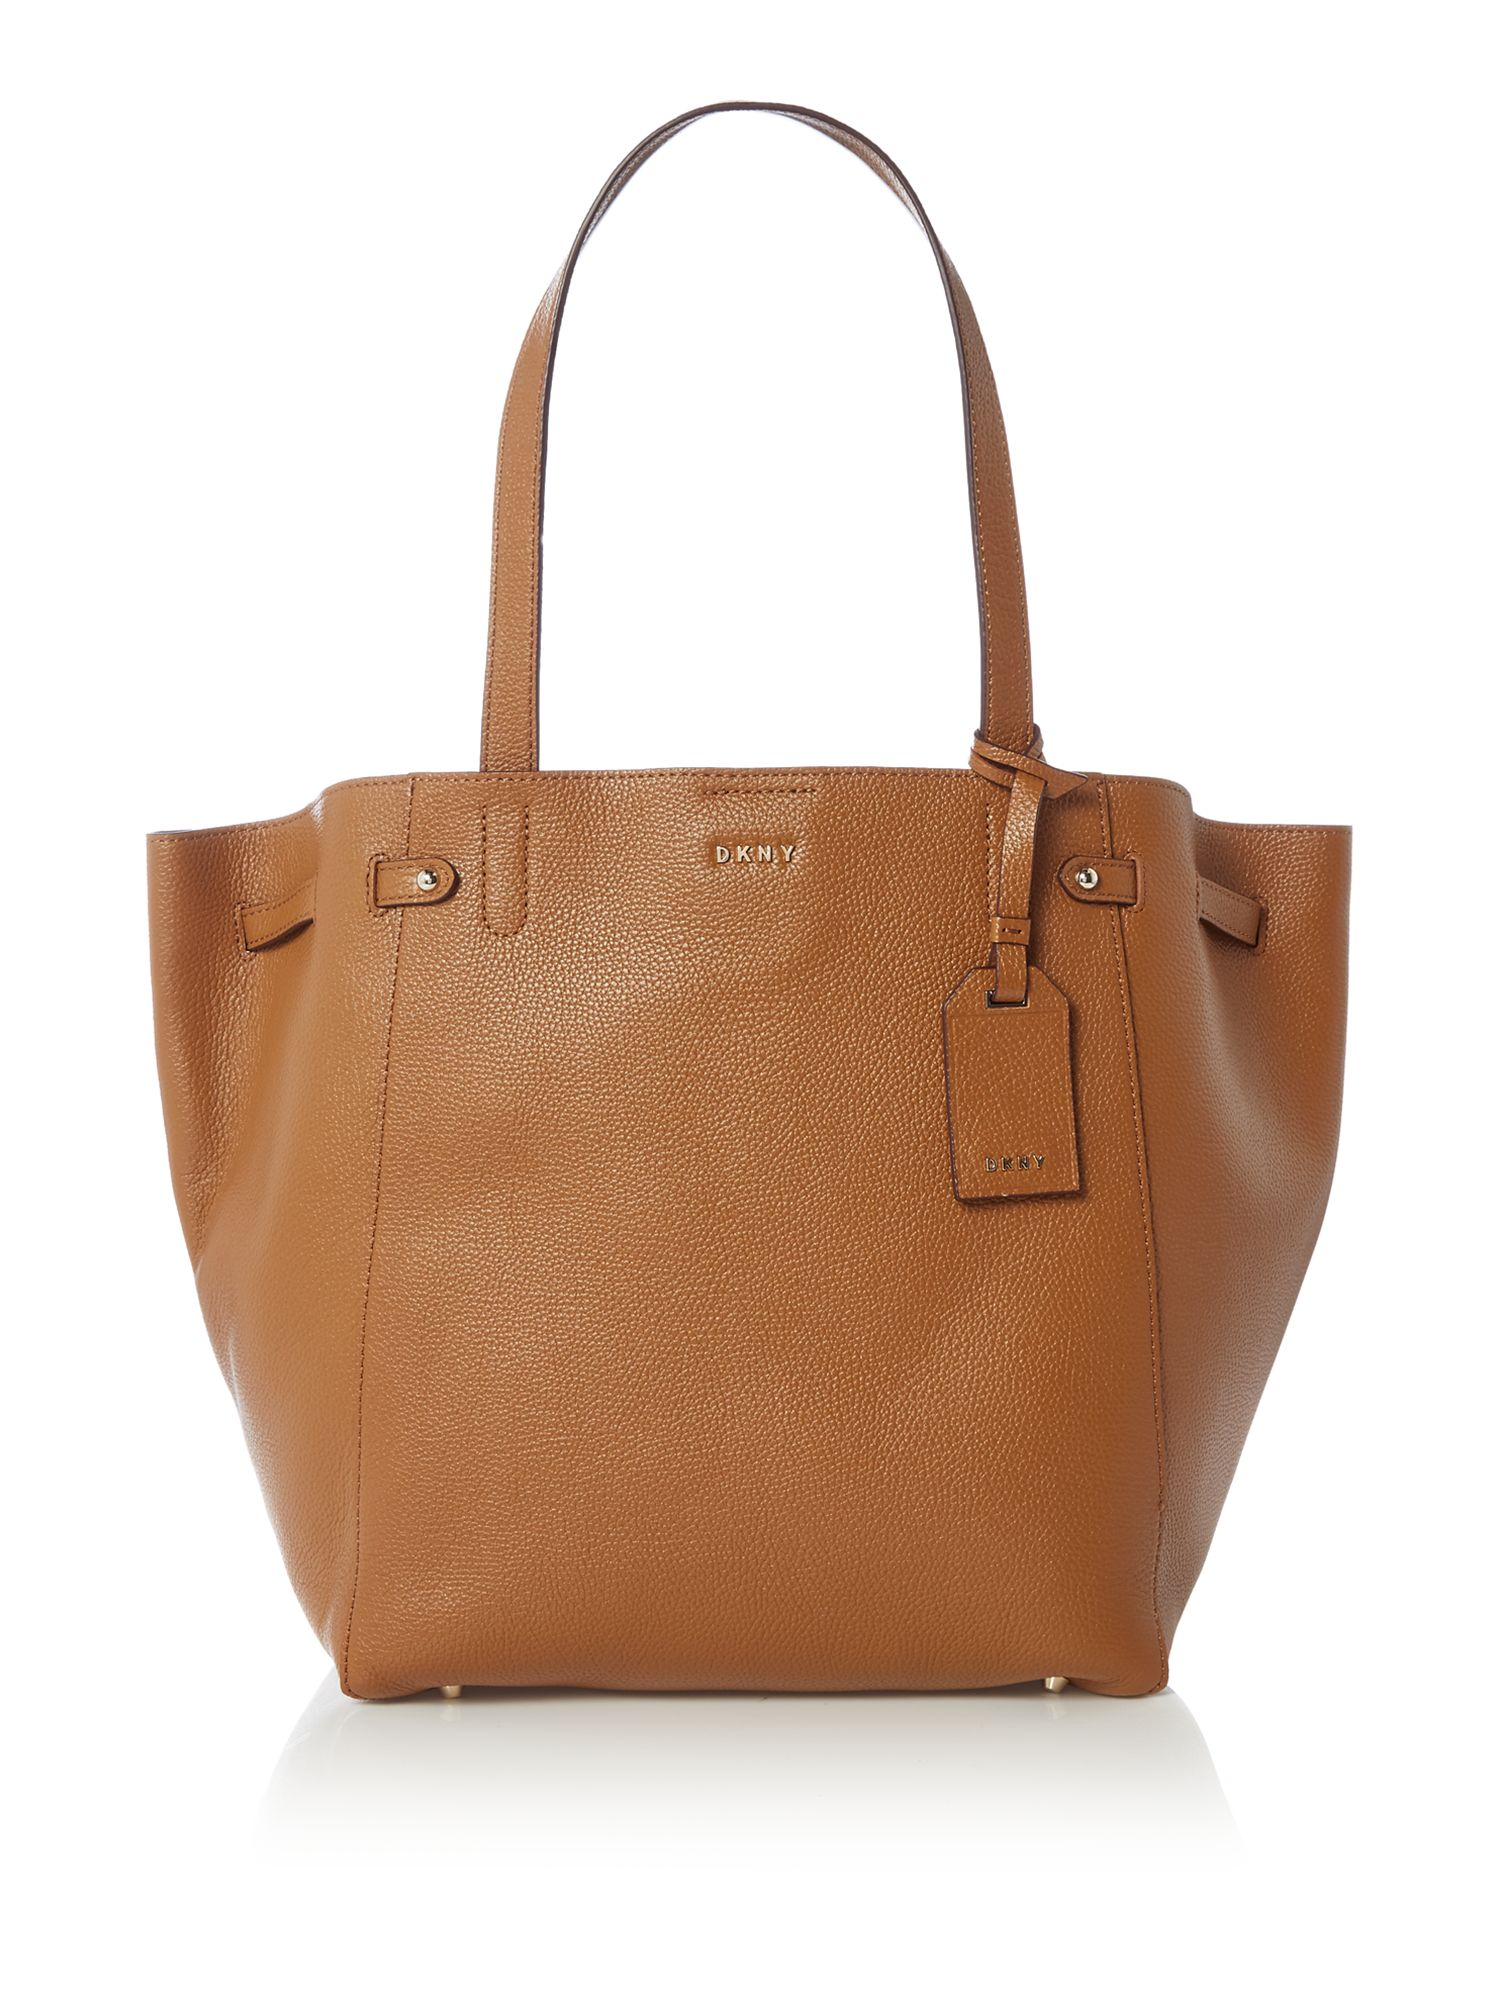 DKNY Chelsea Pebble Large Tote